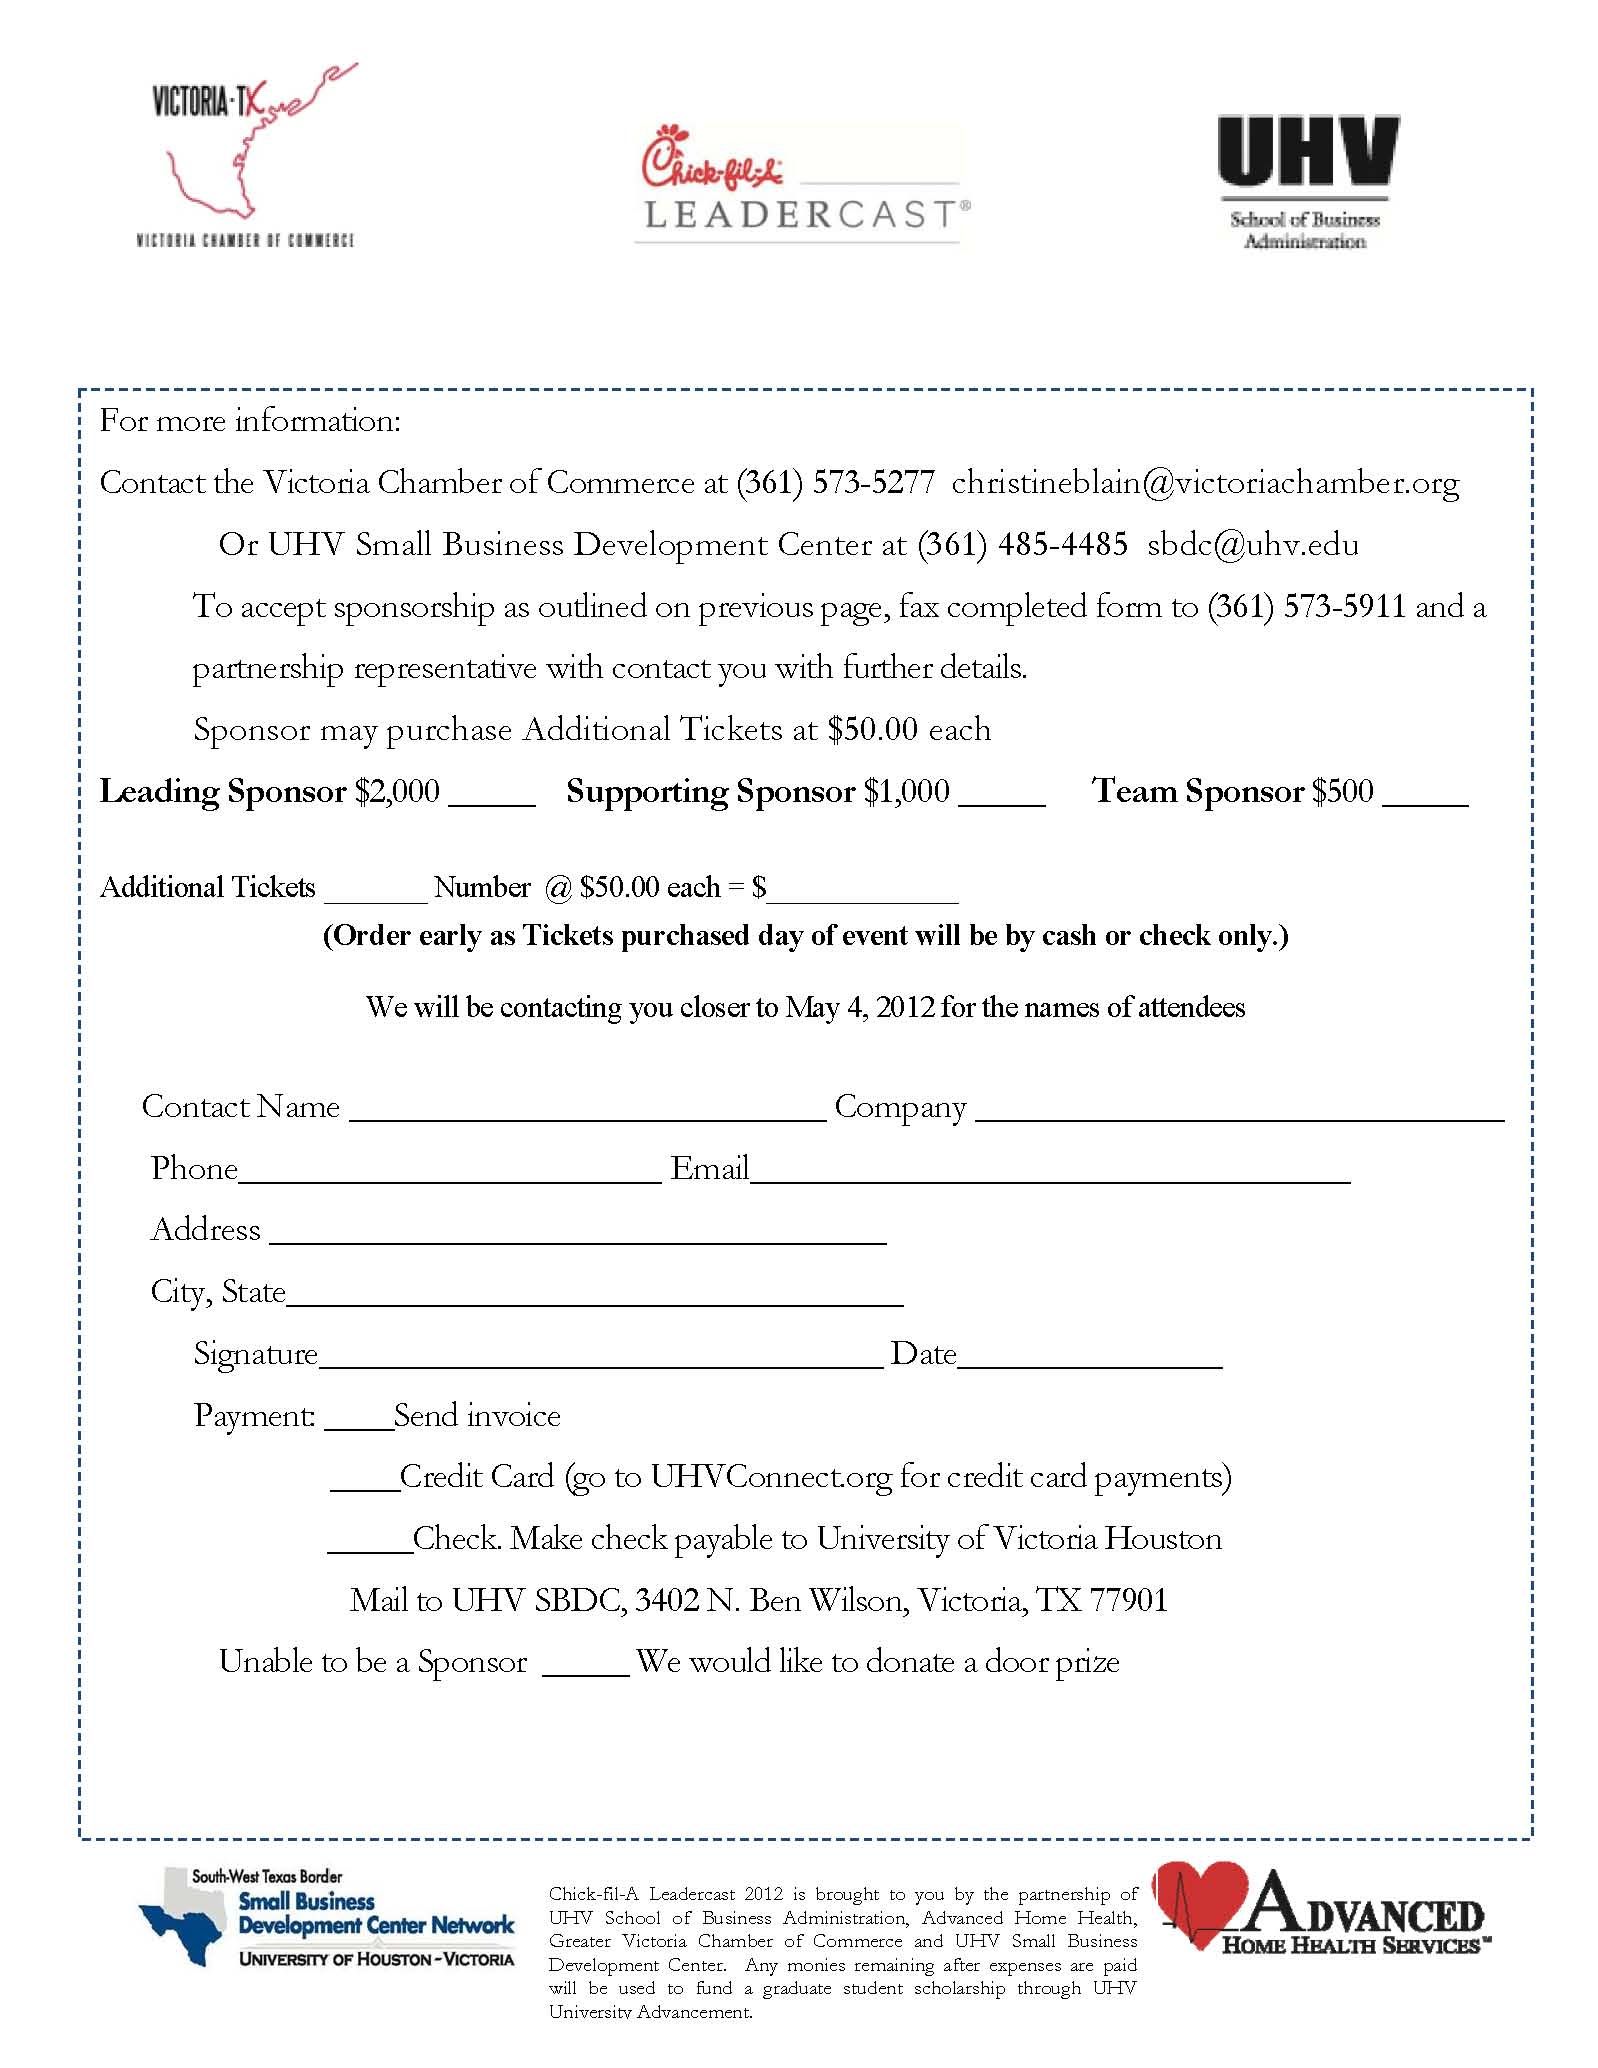 Chick-Fil-A Application | Chef In Training